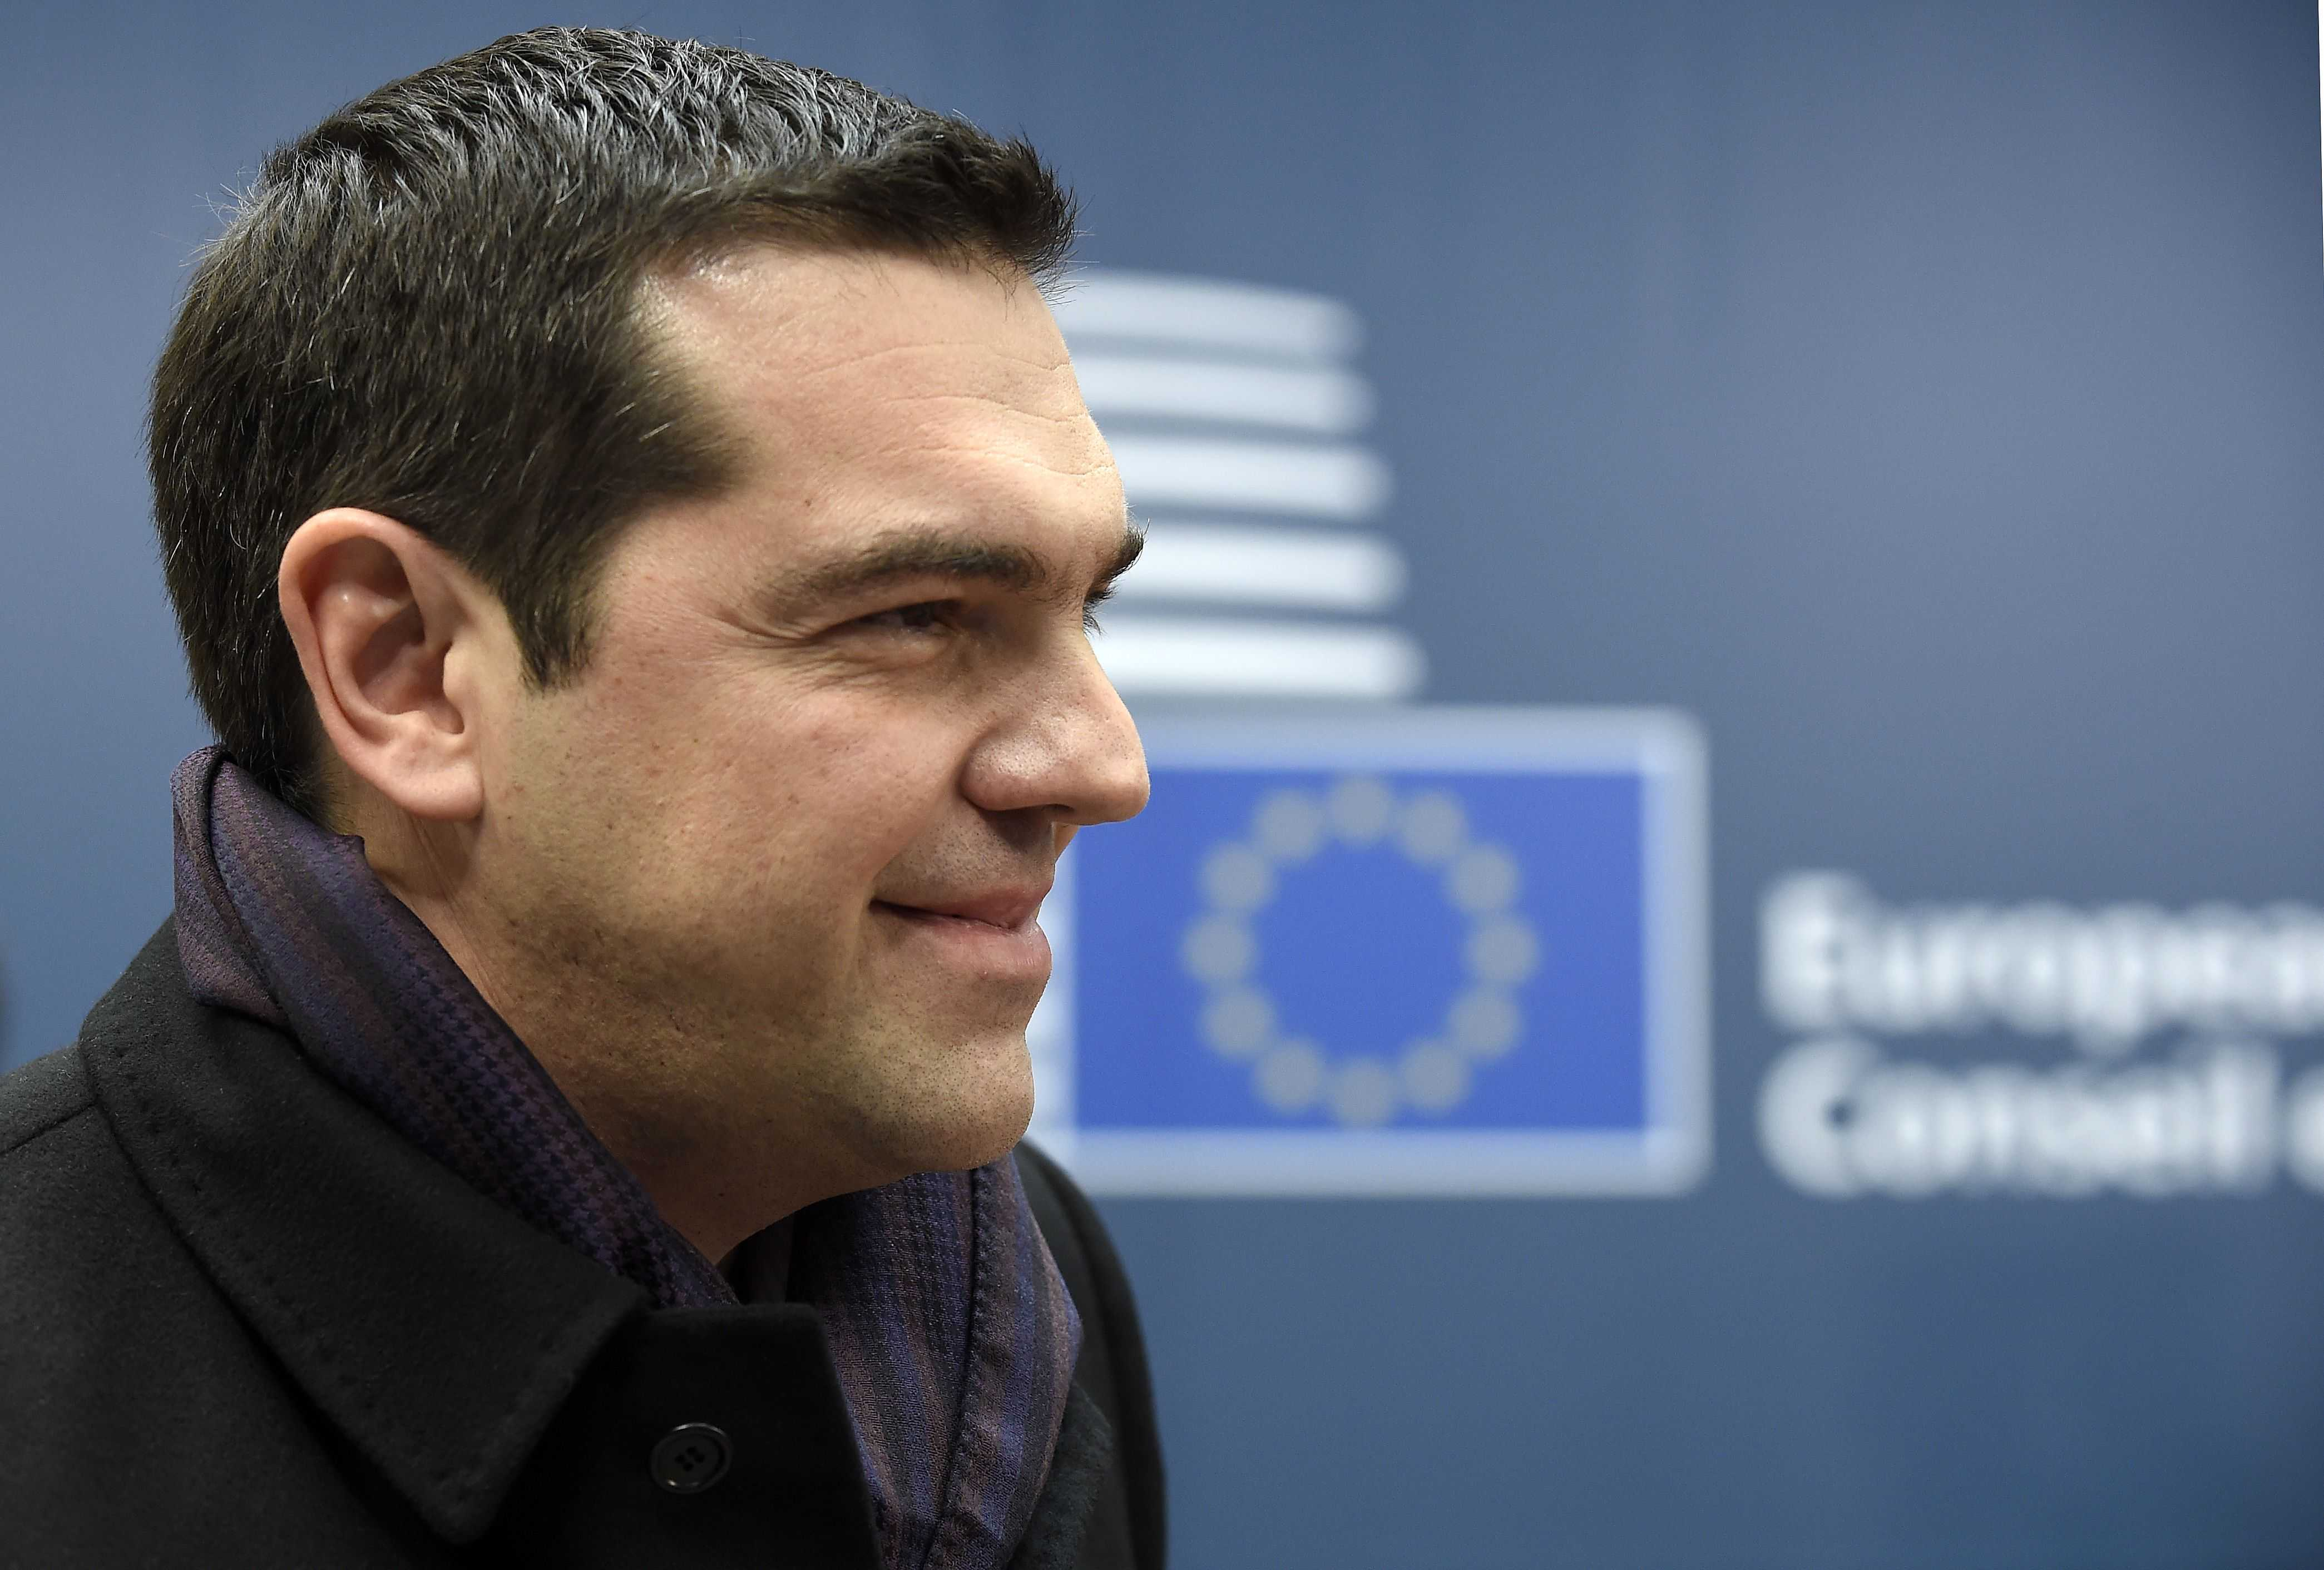 Politico: After seven years of crisis, Greece may finally be ready to turn the page